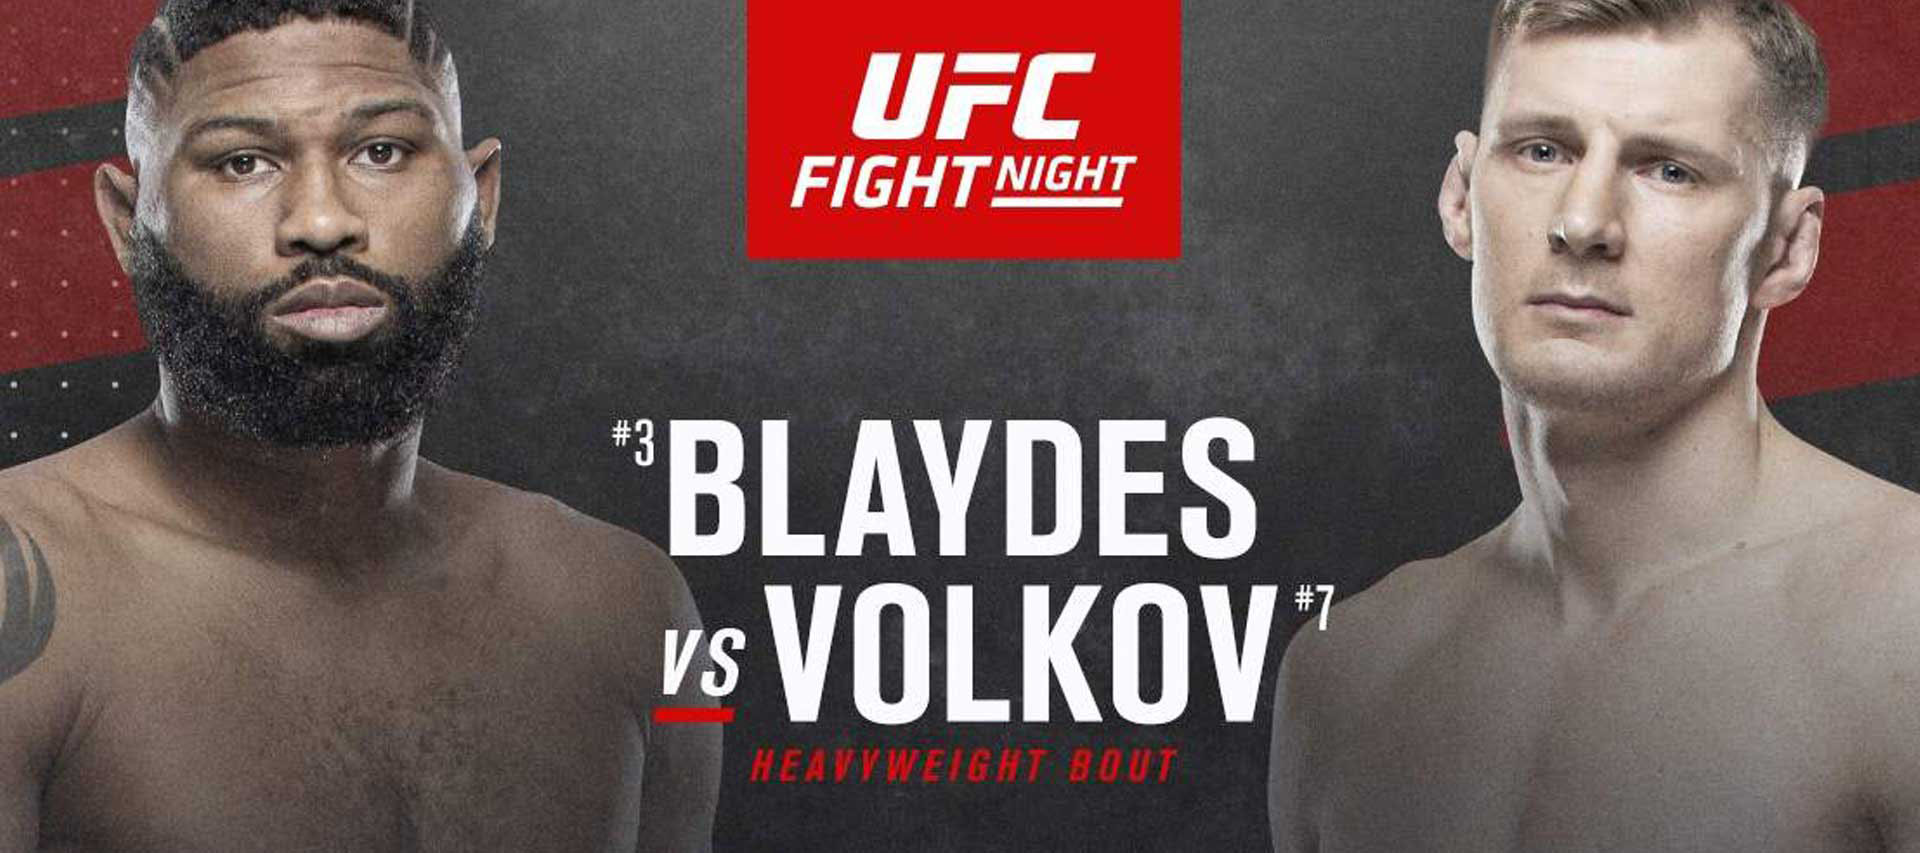 UFC Fight Night: Blaydes vs Volkov